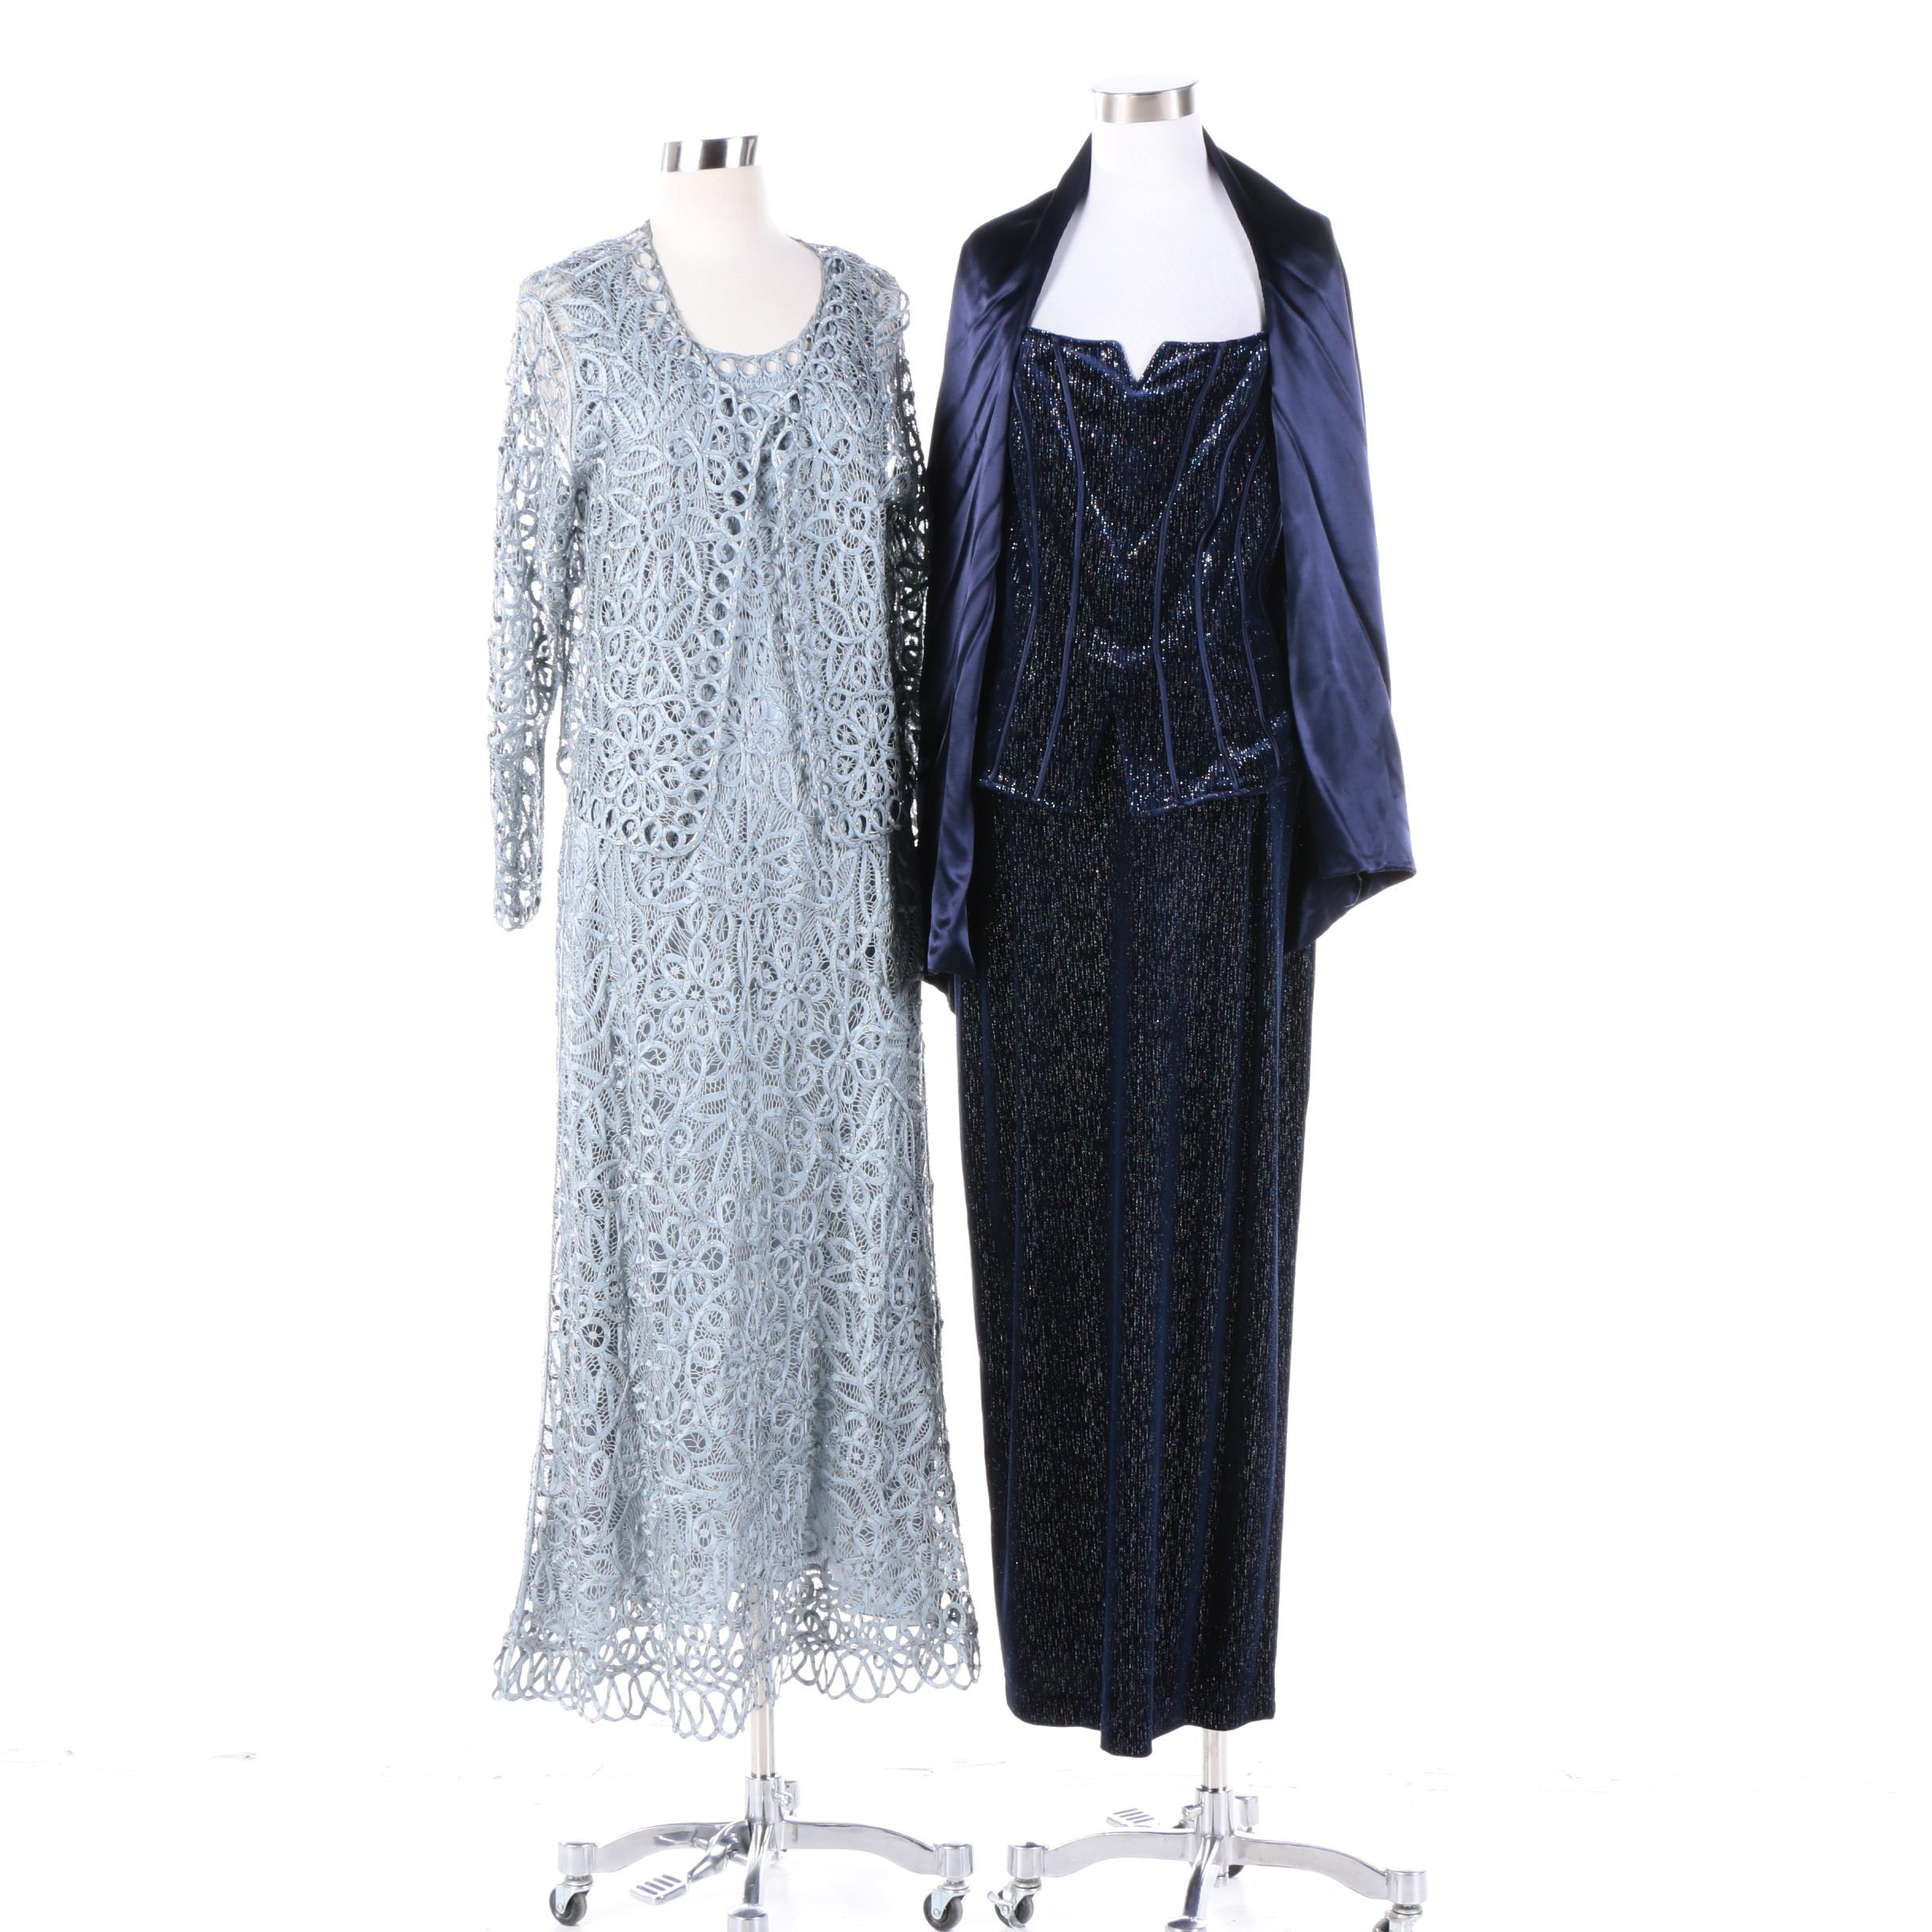 Women's Joseph Ribkoff and Soulmates Formal Evening Gowns